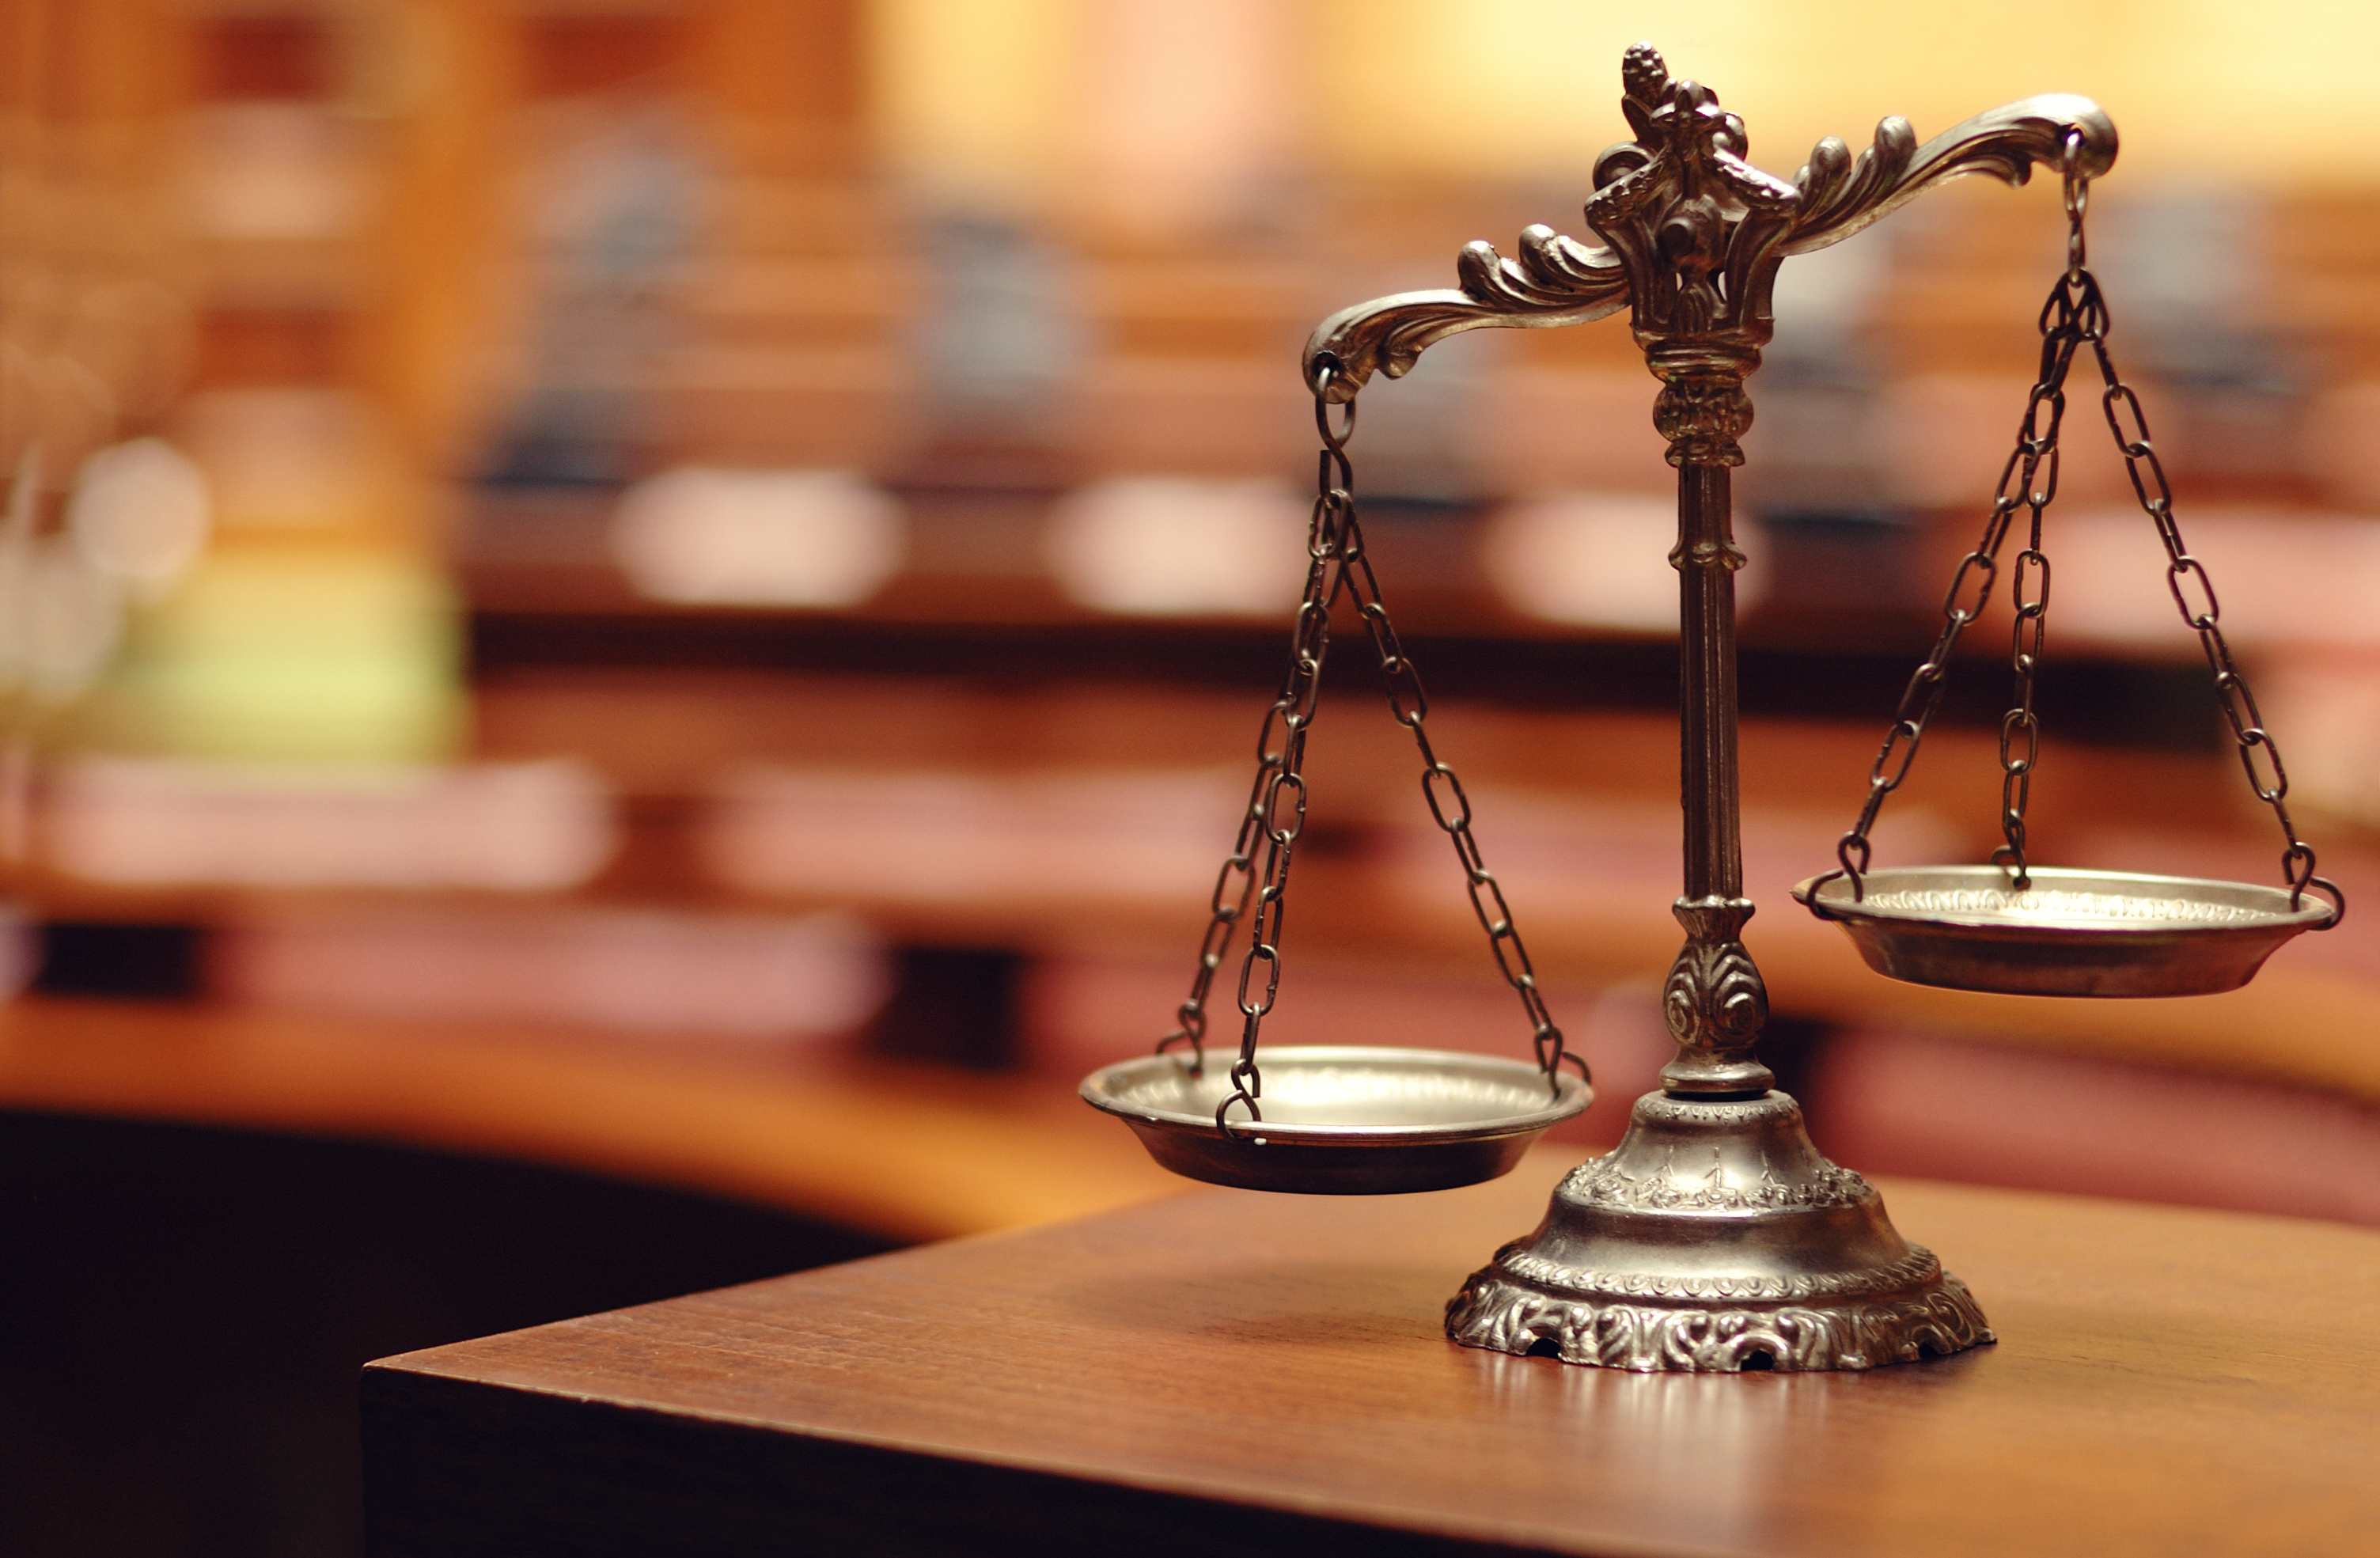 shutterstock_Symbol-of-law-and-justice